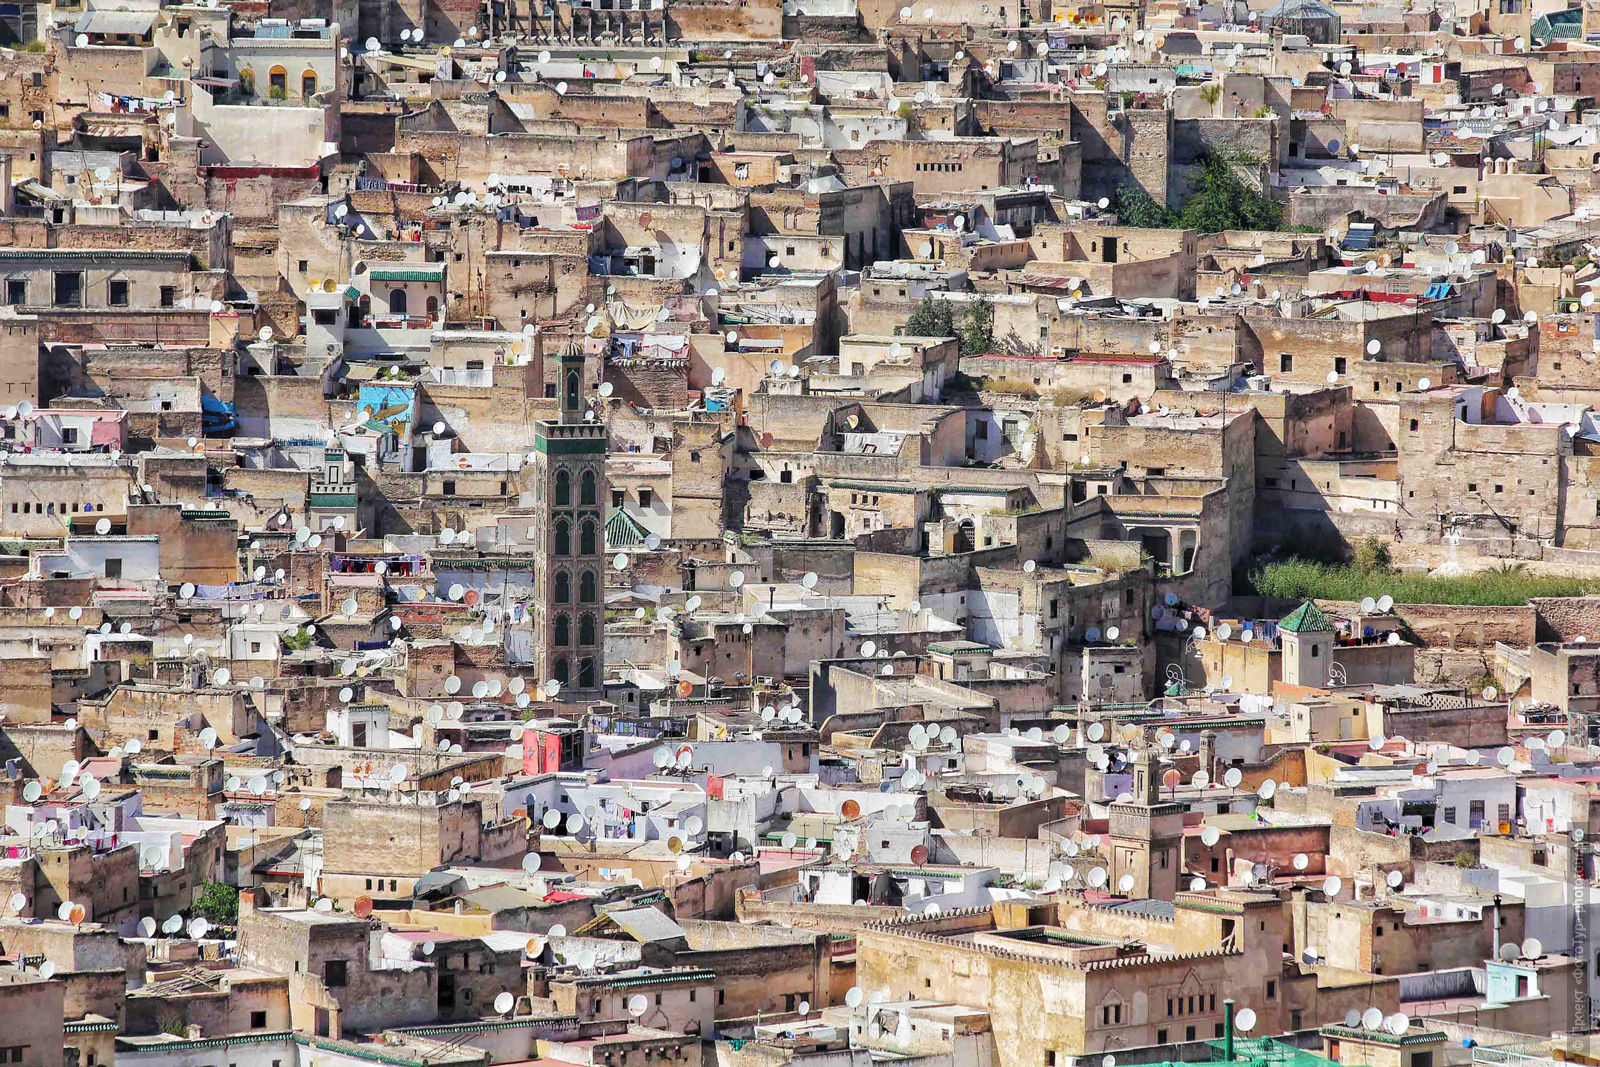 Fes close-up, Morocco, photo tour of Morocco, October 2018.